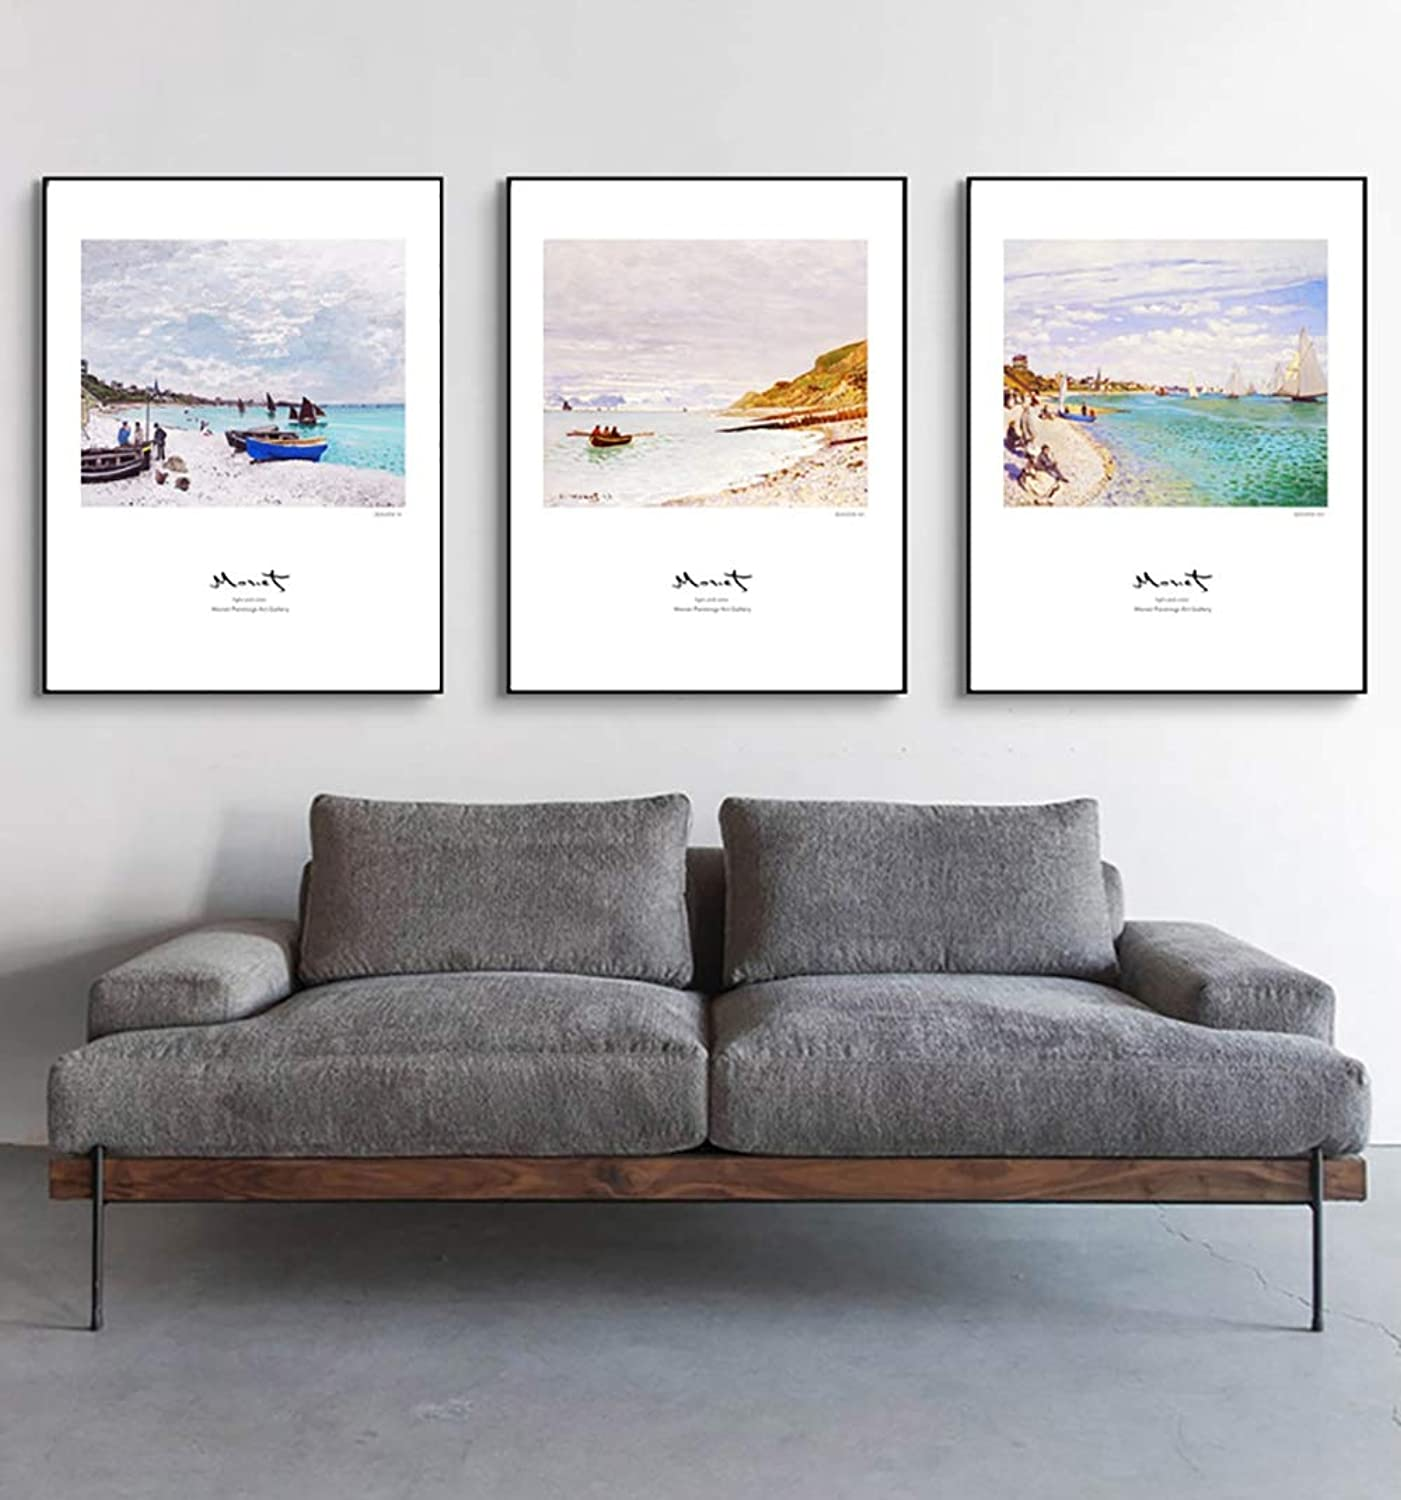 3 Piece Wall Art Painting, Natural Scenery Decorative Paintings, for Sofas, Seascapes, Wall Paintings, Modern Minimalist Living Room, Triptychral Painting,E,40X60CM